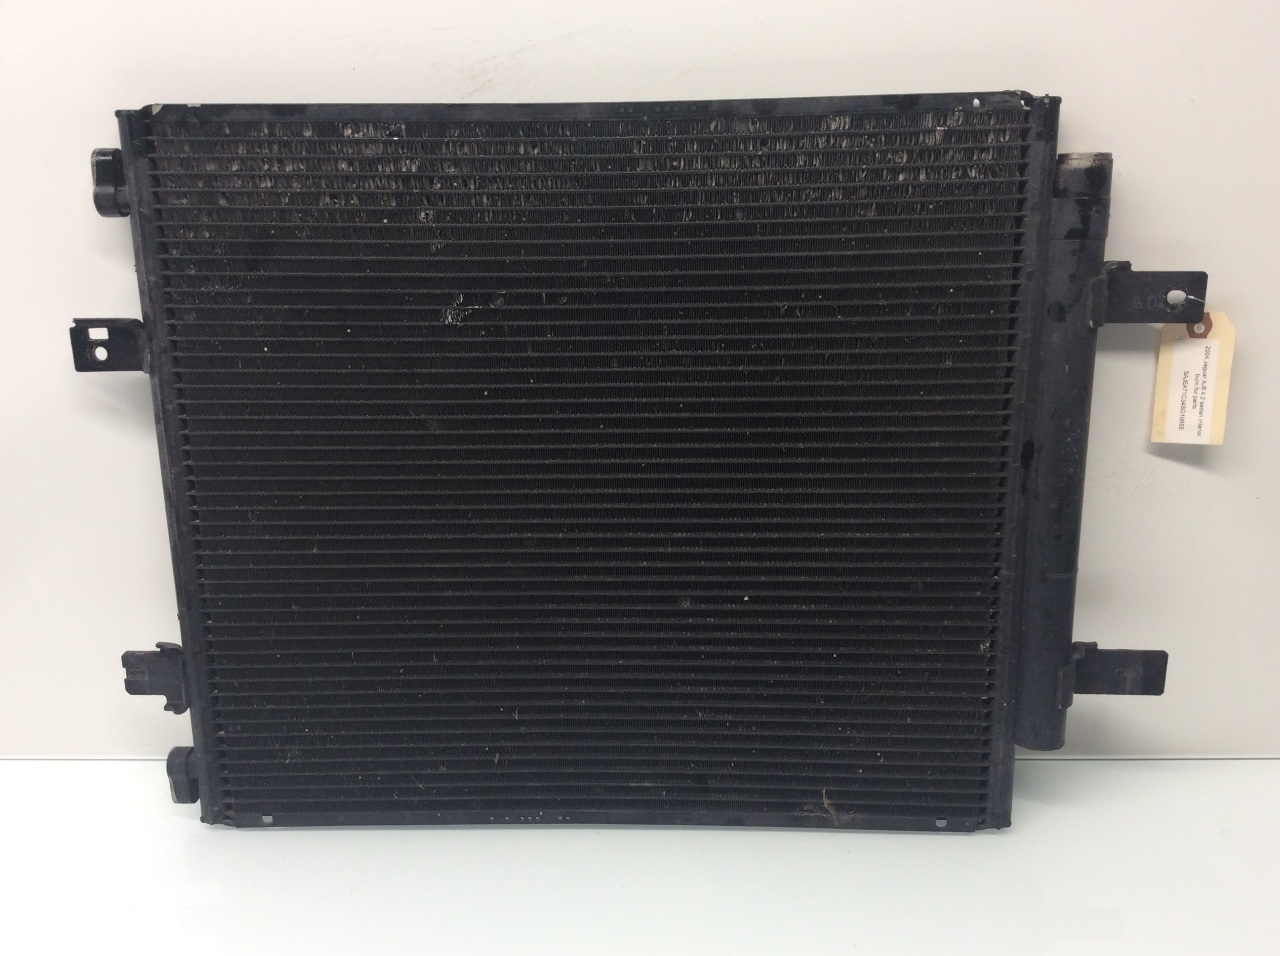 #786953 Jaguar XJ8 Air Conditioning Condenser Ac A/c C2C12578  Most Effective 10075 Air Condition Condenser pictures with 1280x956 px on helpvideos.info - Air Conditioners, Air Coolers and more